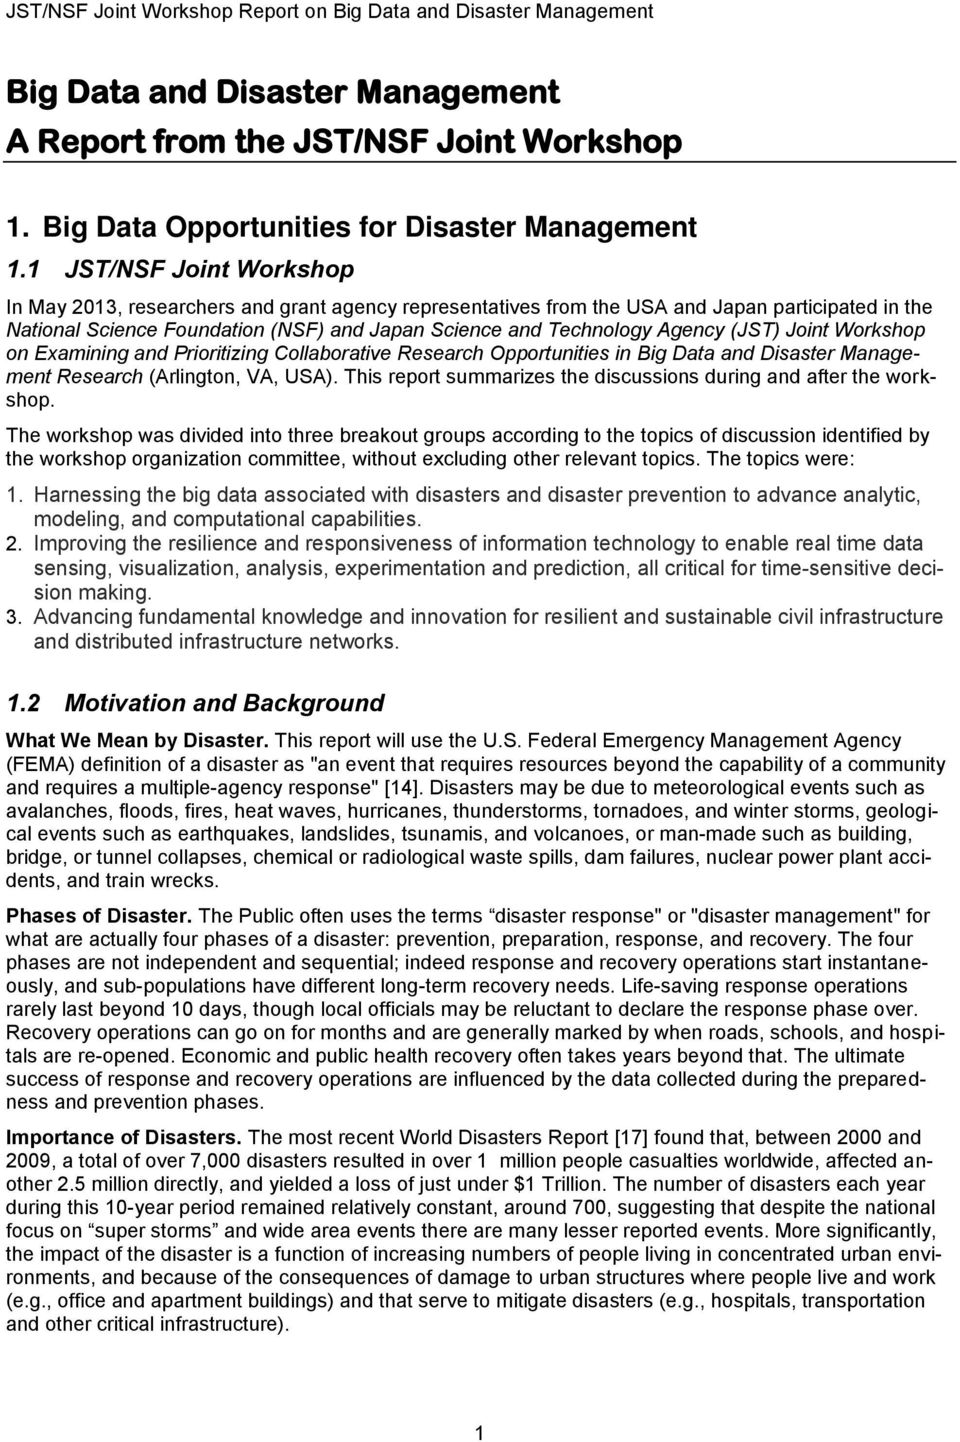 (JST) Joint Workshop on Examining and Prioritizing Collaborative Research Opportunities in Big Data and Disaster Management Research (Arlington, VA, USA).